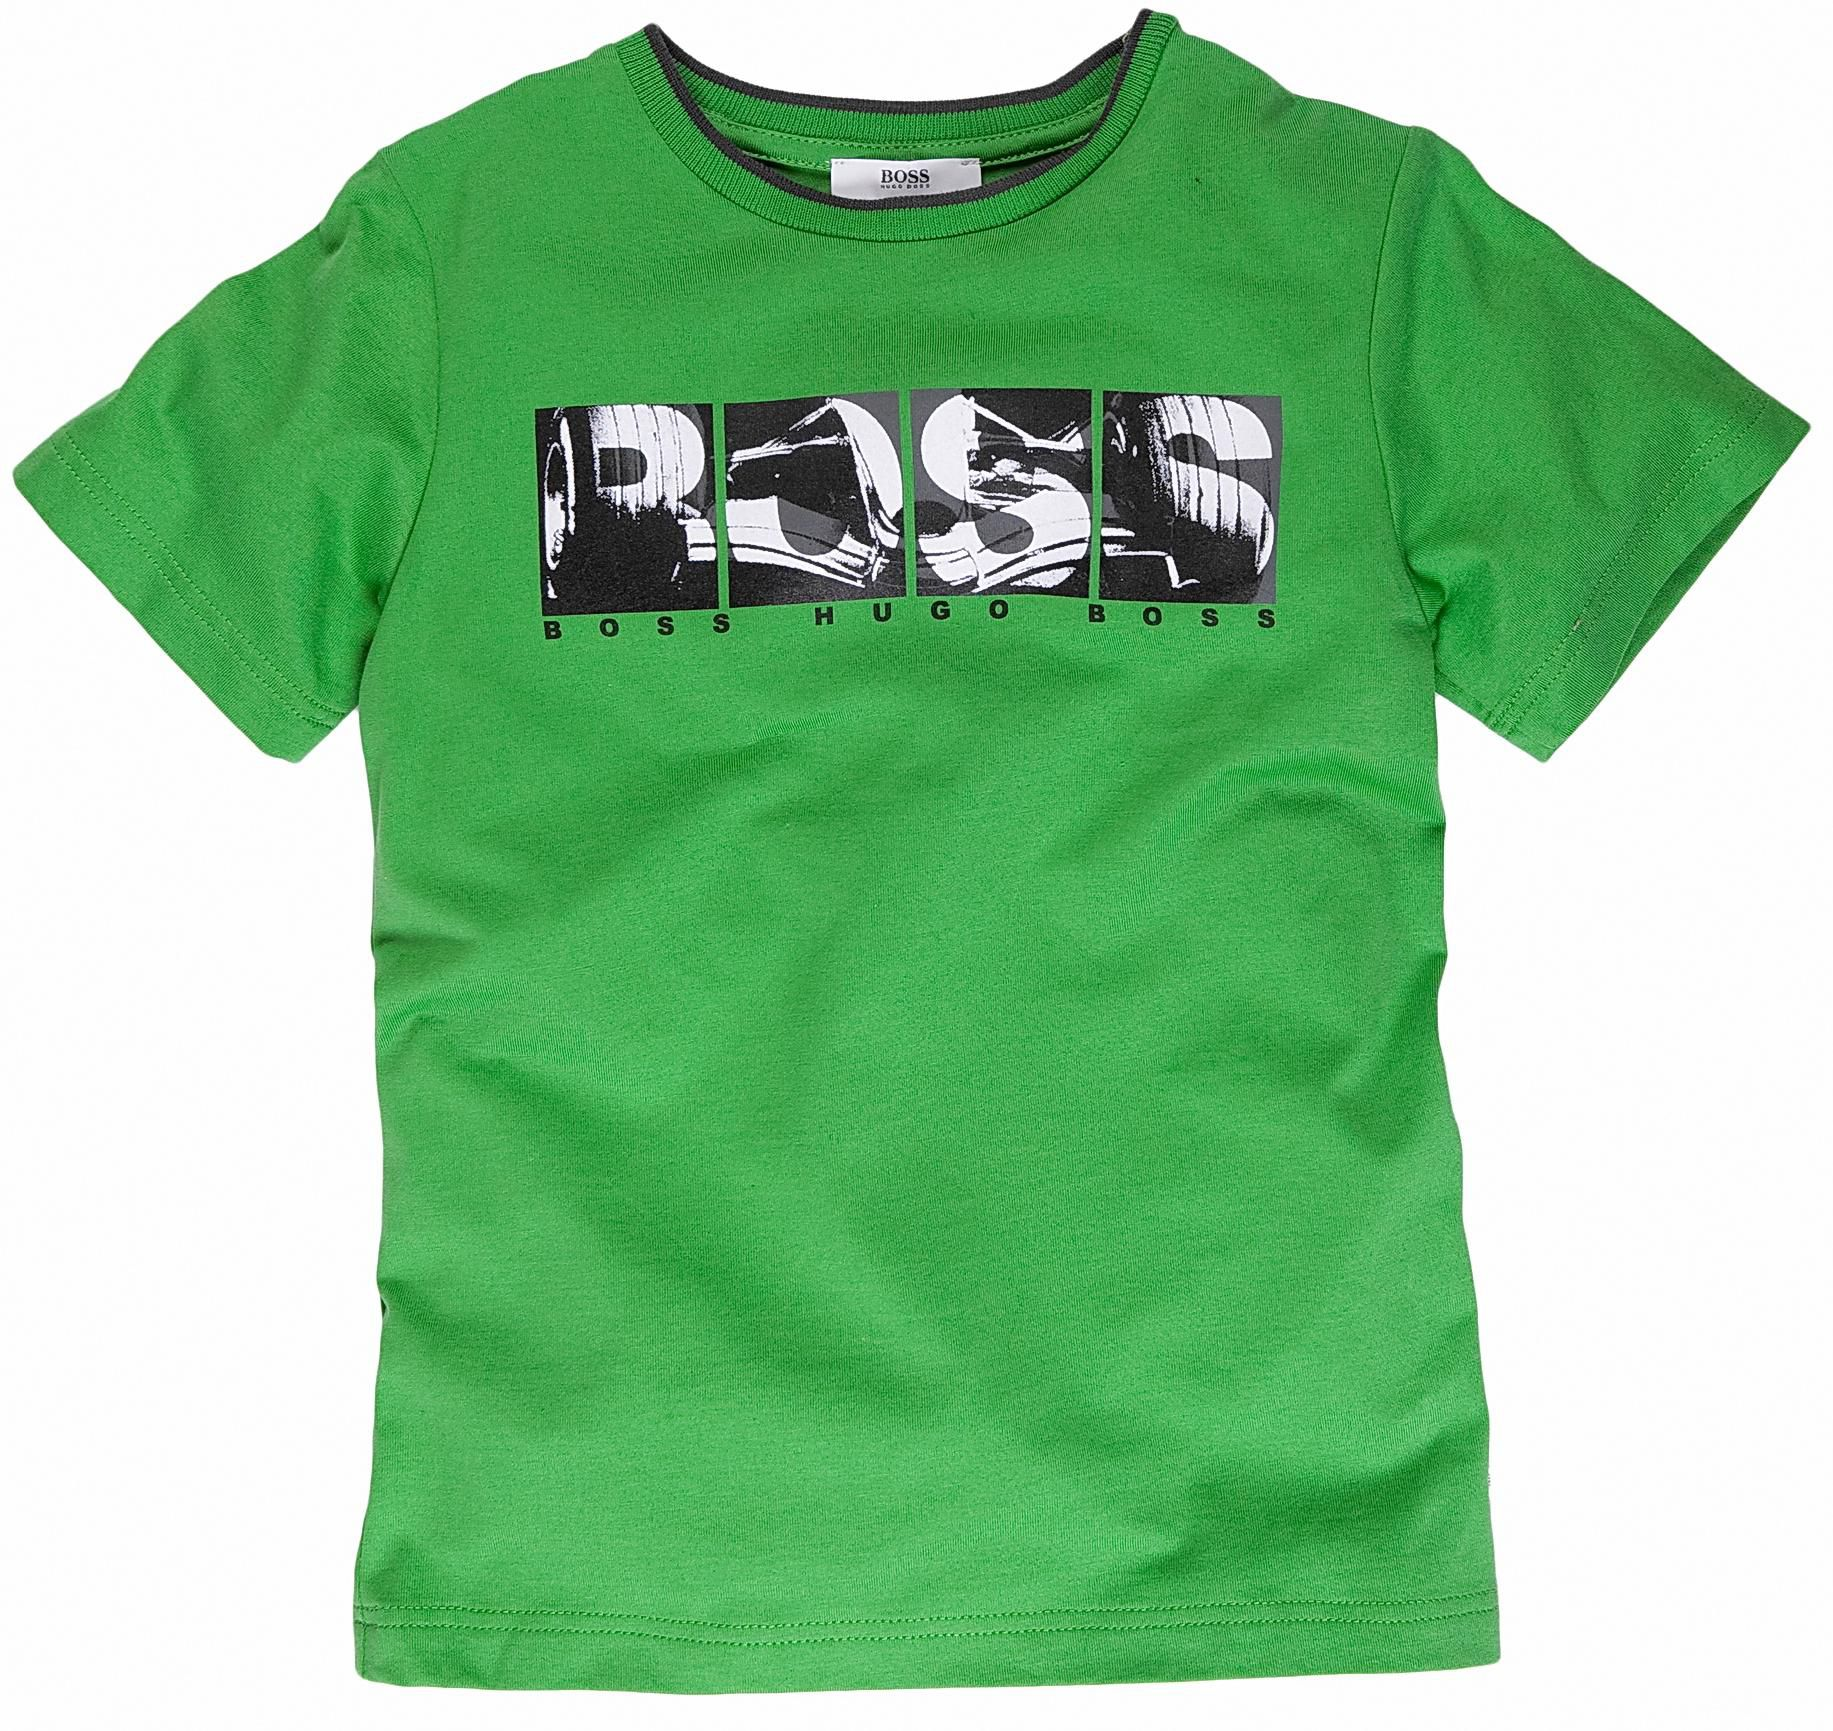 Hugo Boss Short-sleeved logo T-shirt Green product image